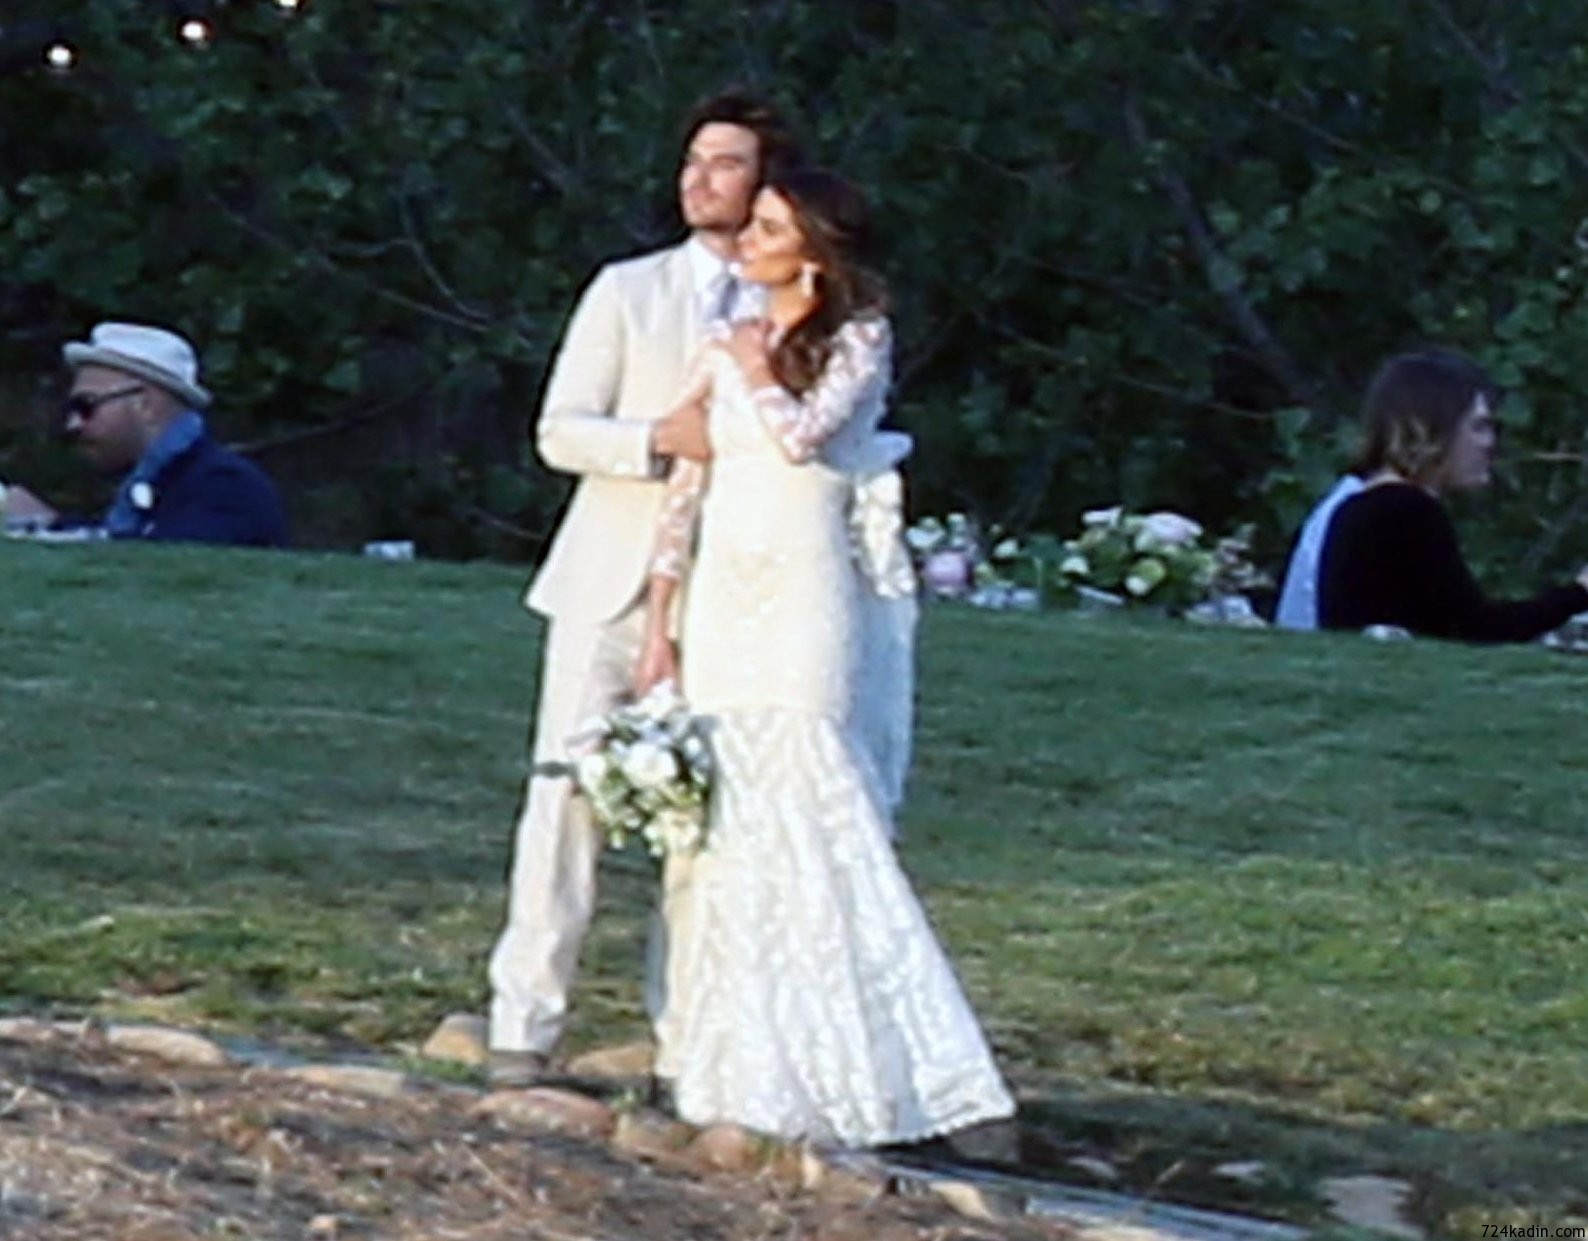 EXCLUSIVE:  **PREMIUM RATES APPLY** Nikki reed and Ian somerhalder get married at a romantic sunset ceremony in the Santa Monica mountains.